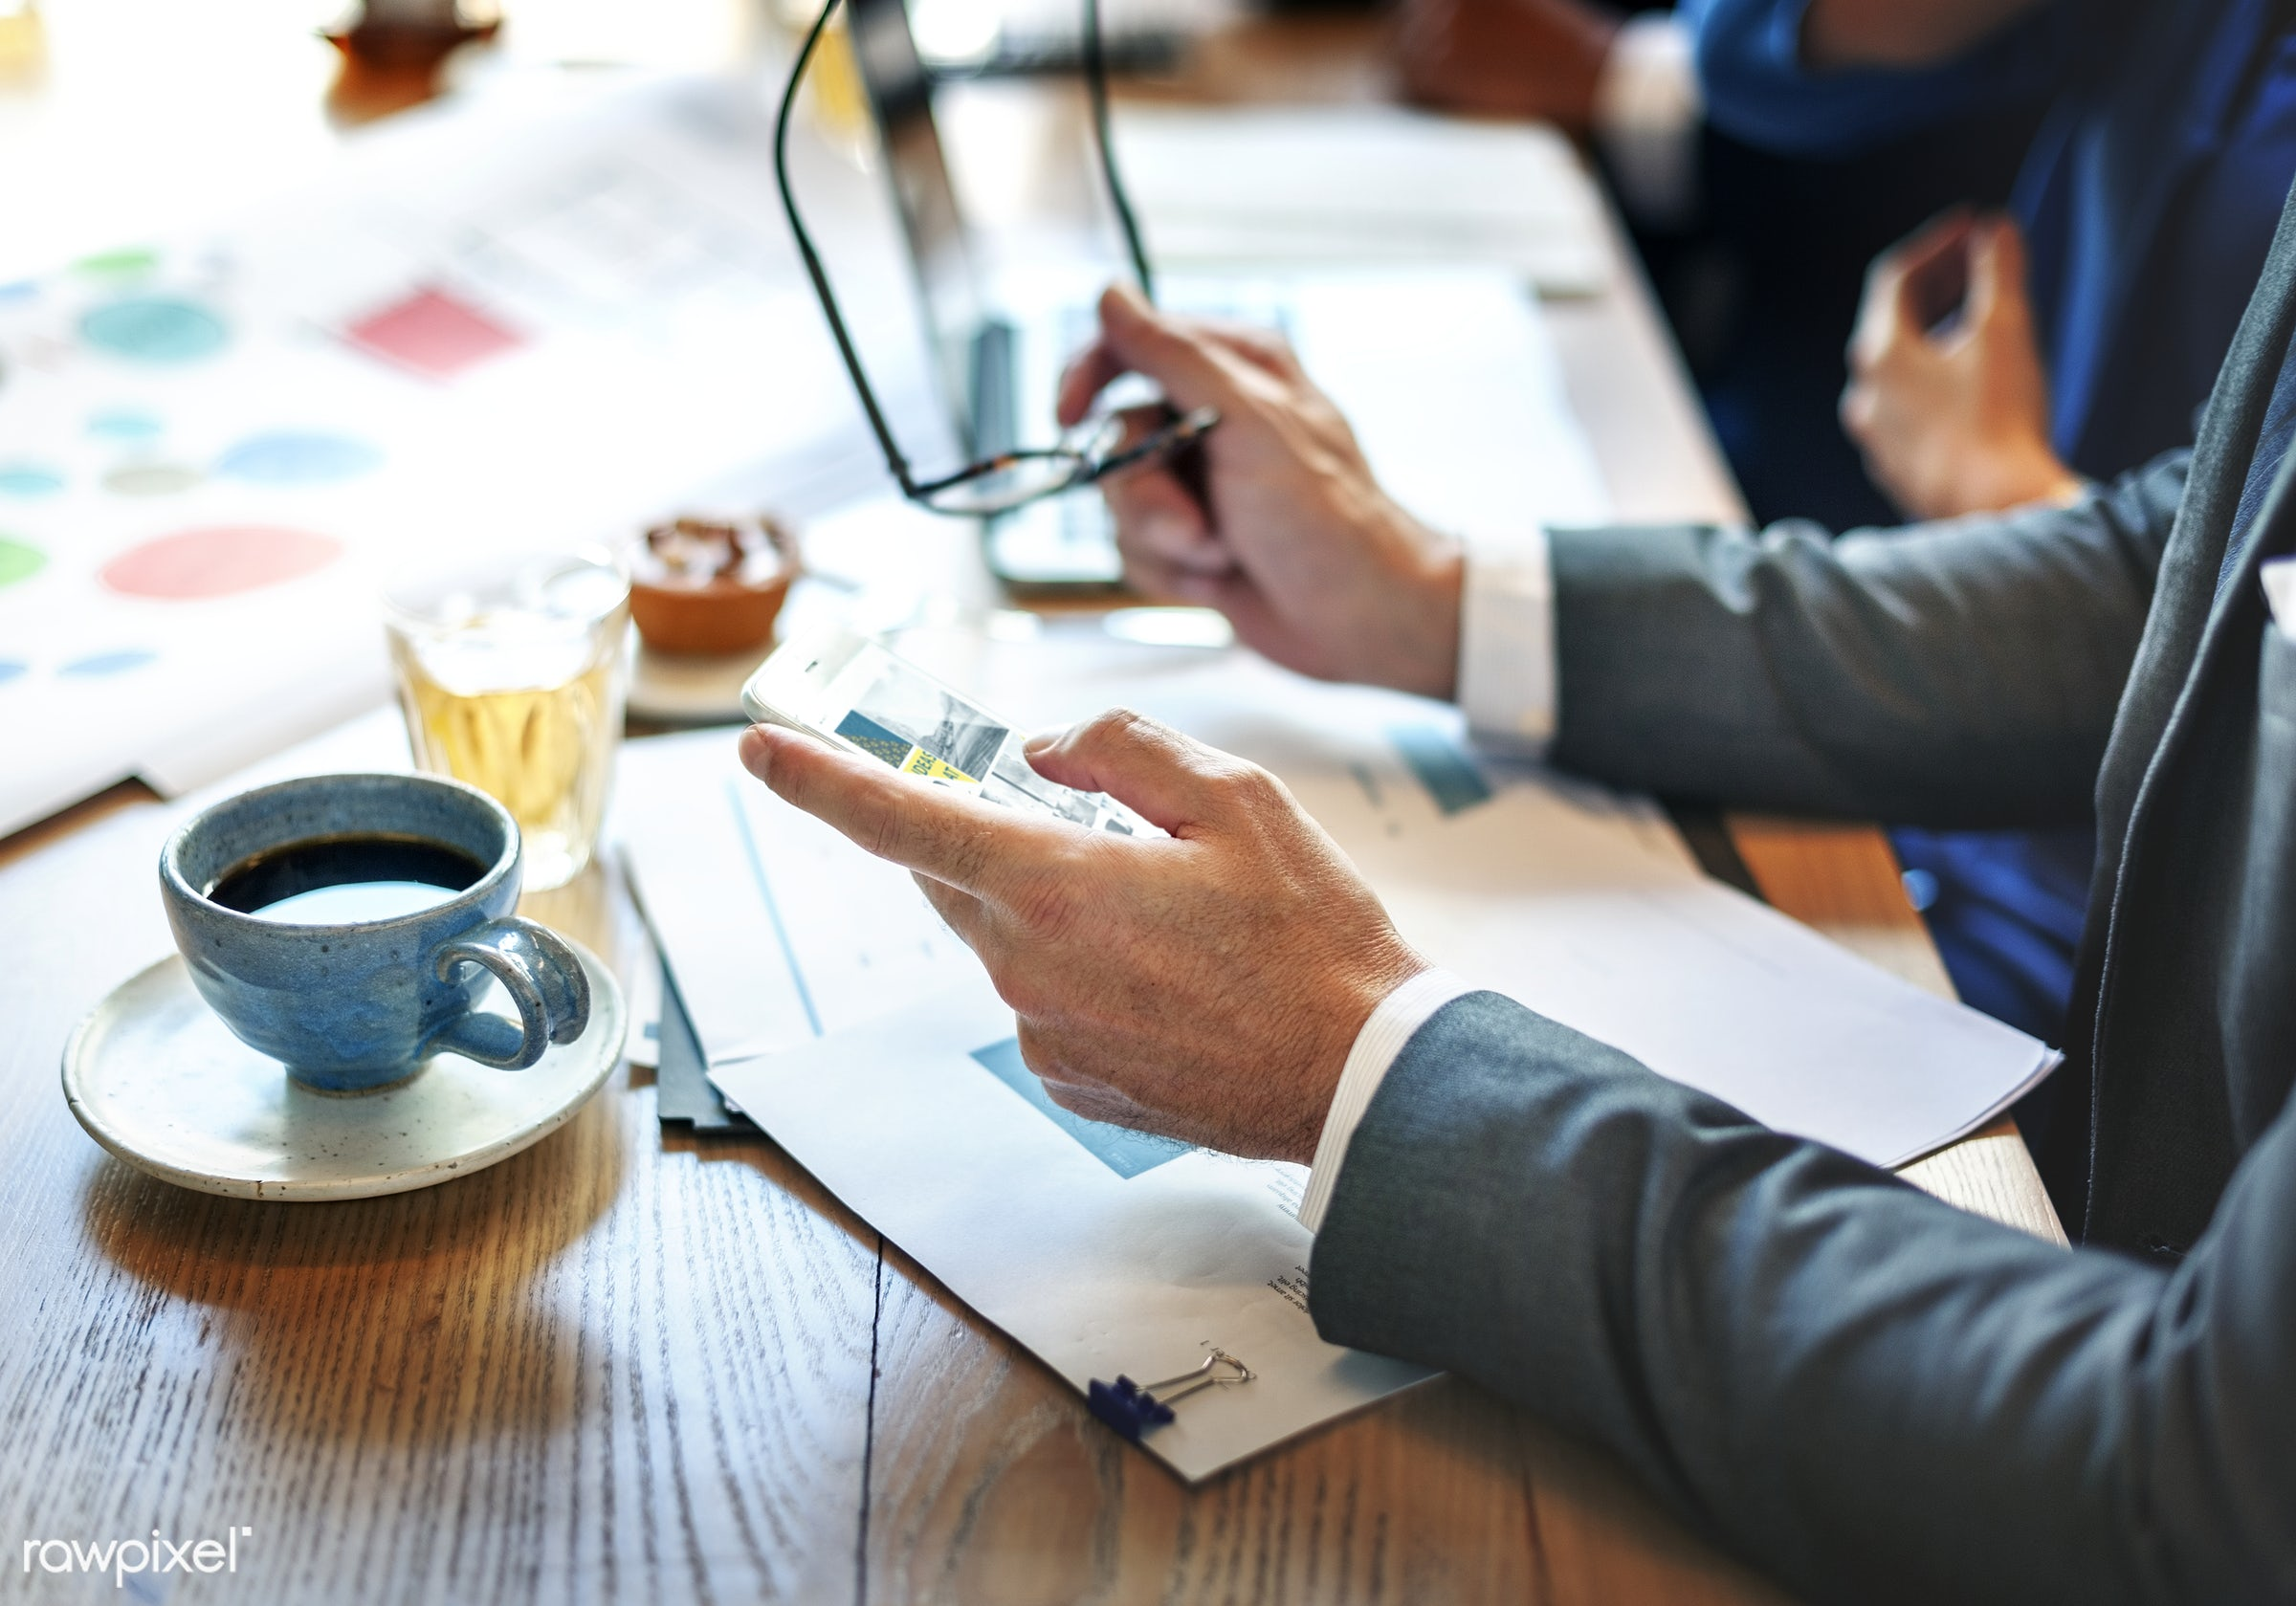 analysis, brainstorming, break, business people, businessmen, cake, cellphone, closeup, coffee, coffee cup, communication,...